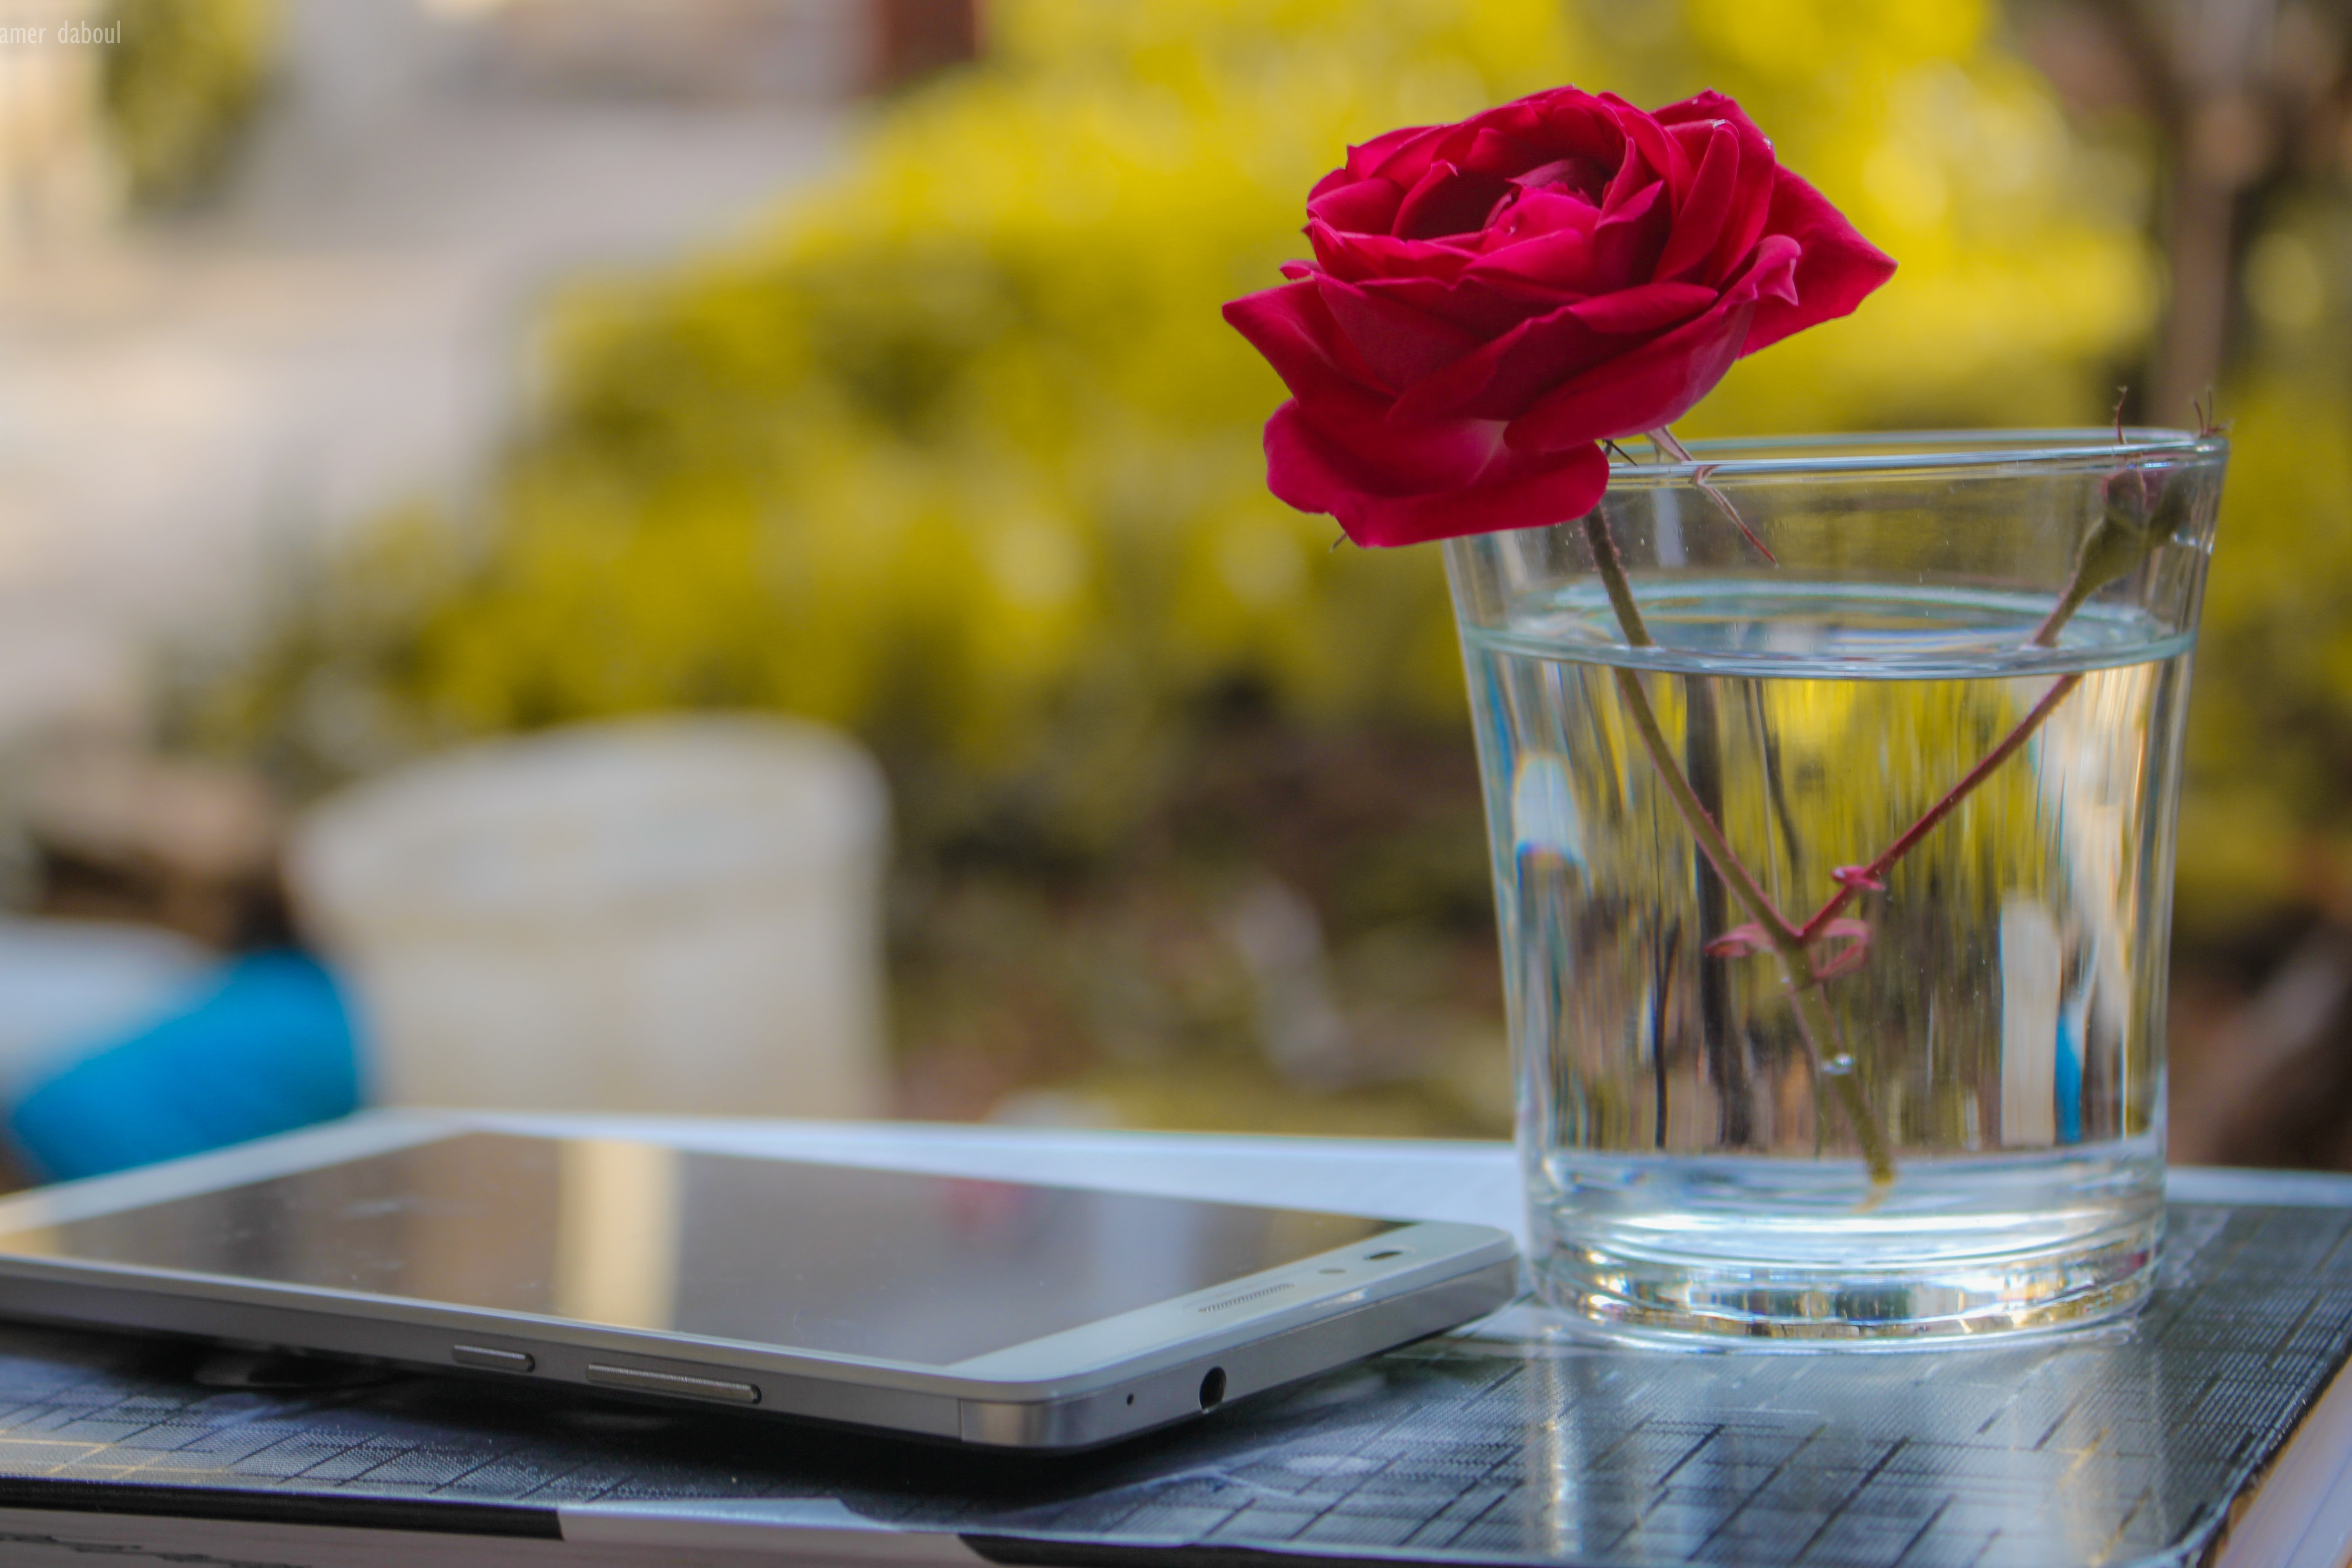 White android smartphone near clear glass vase with red rose photo